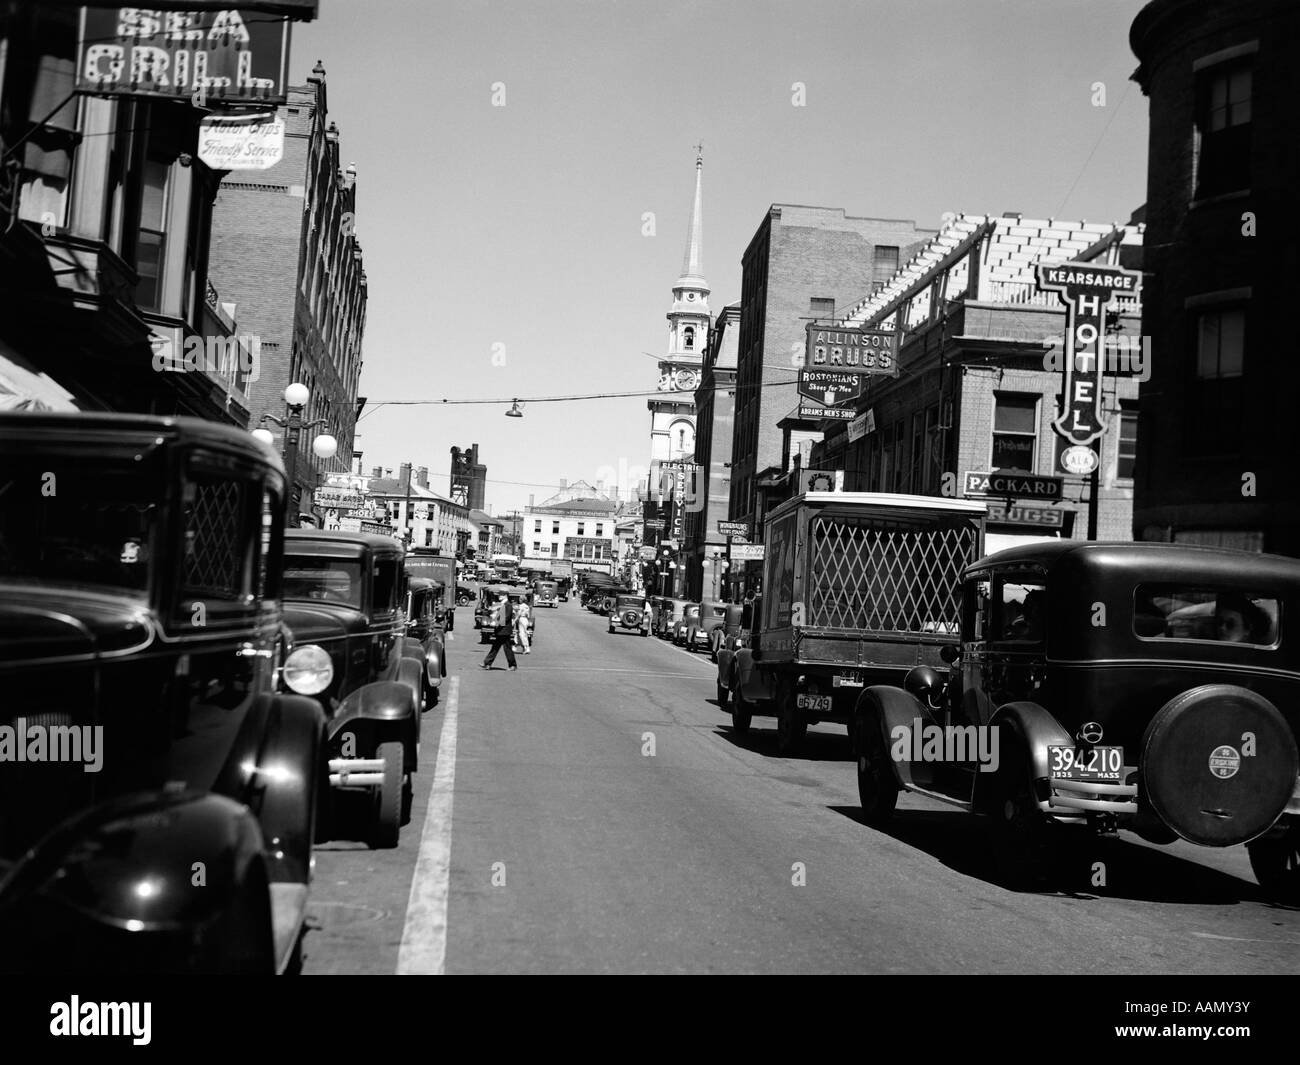 1930s 1935 MAIN STREET SMALL TOWN AUTOMOBILE TRUCK PEDESTRIAN TRAFFIC IN PORTSMOUTH NEW HAMPSHIRE USA - Stock Image